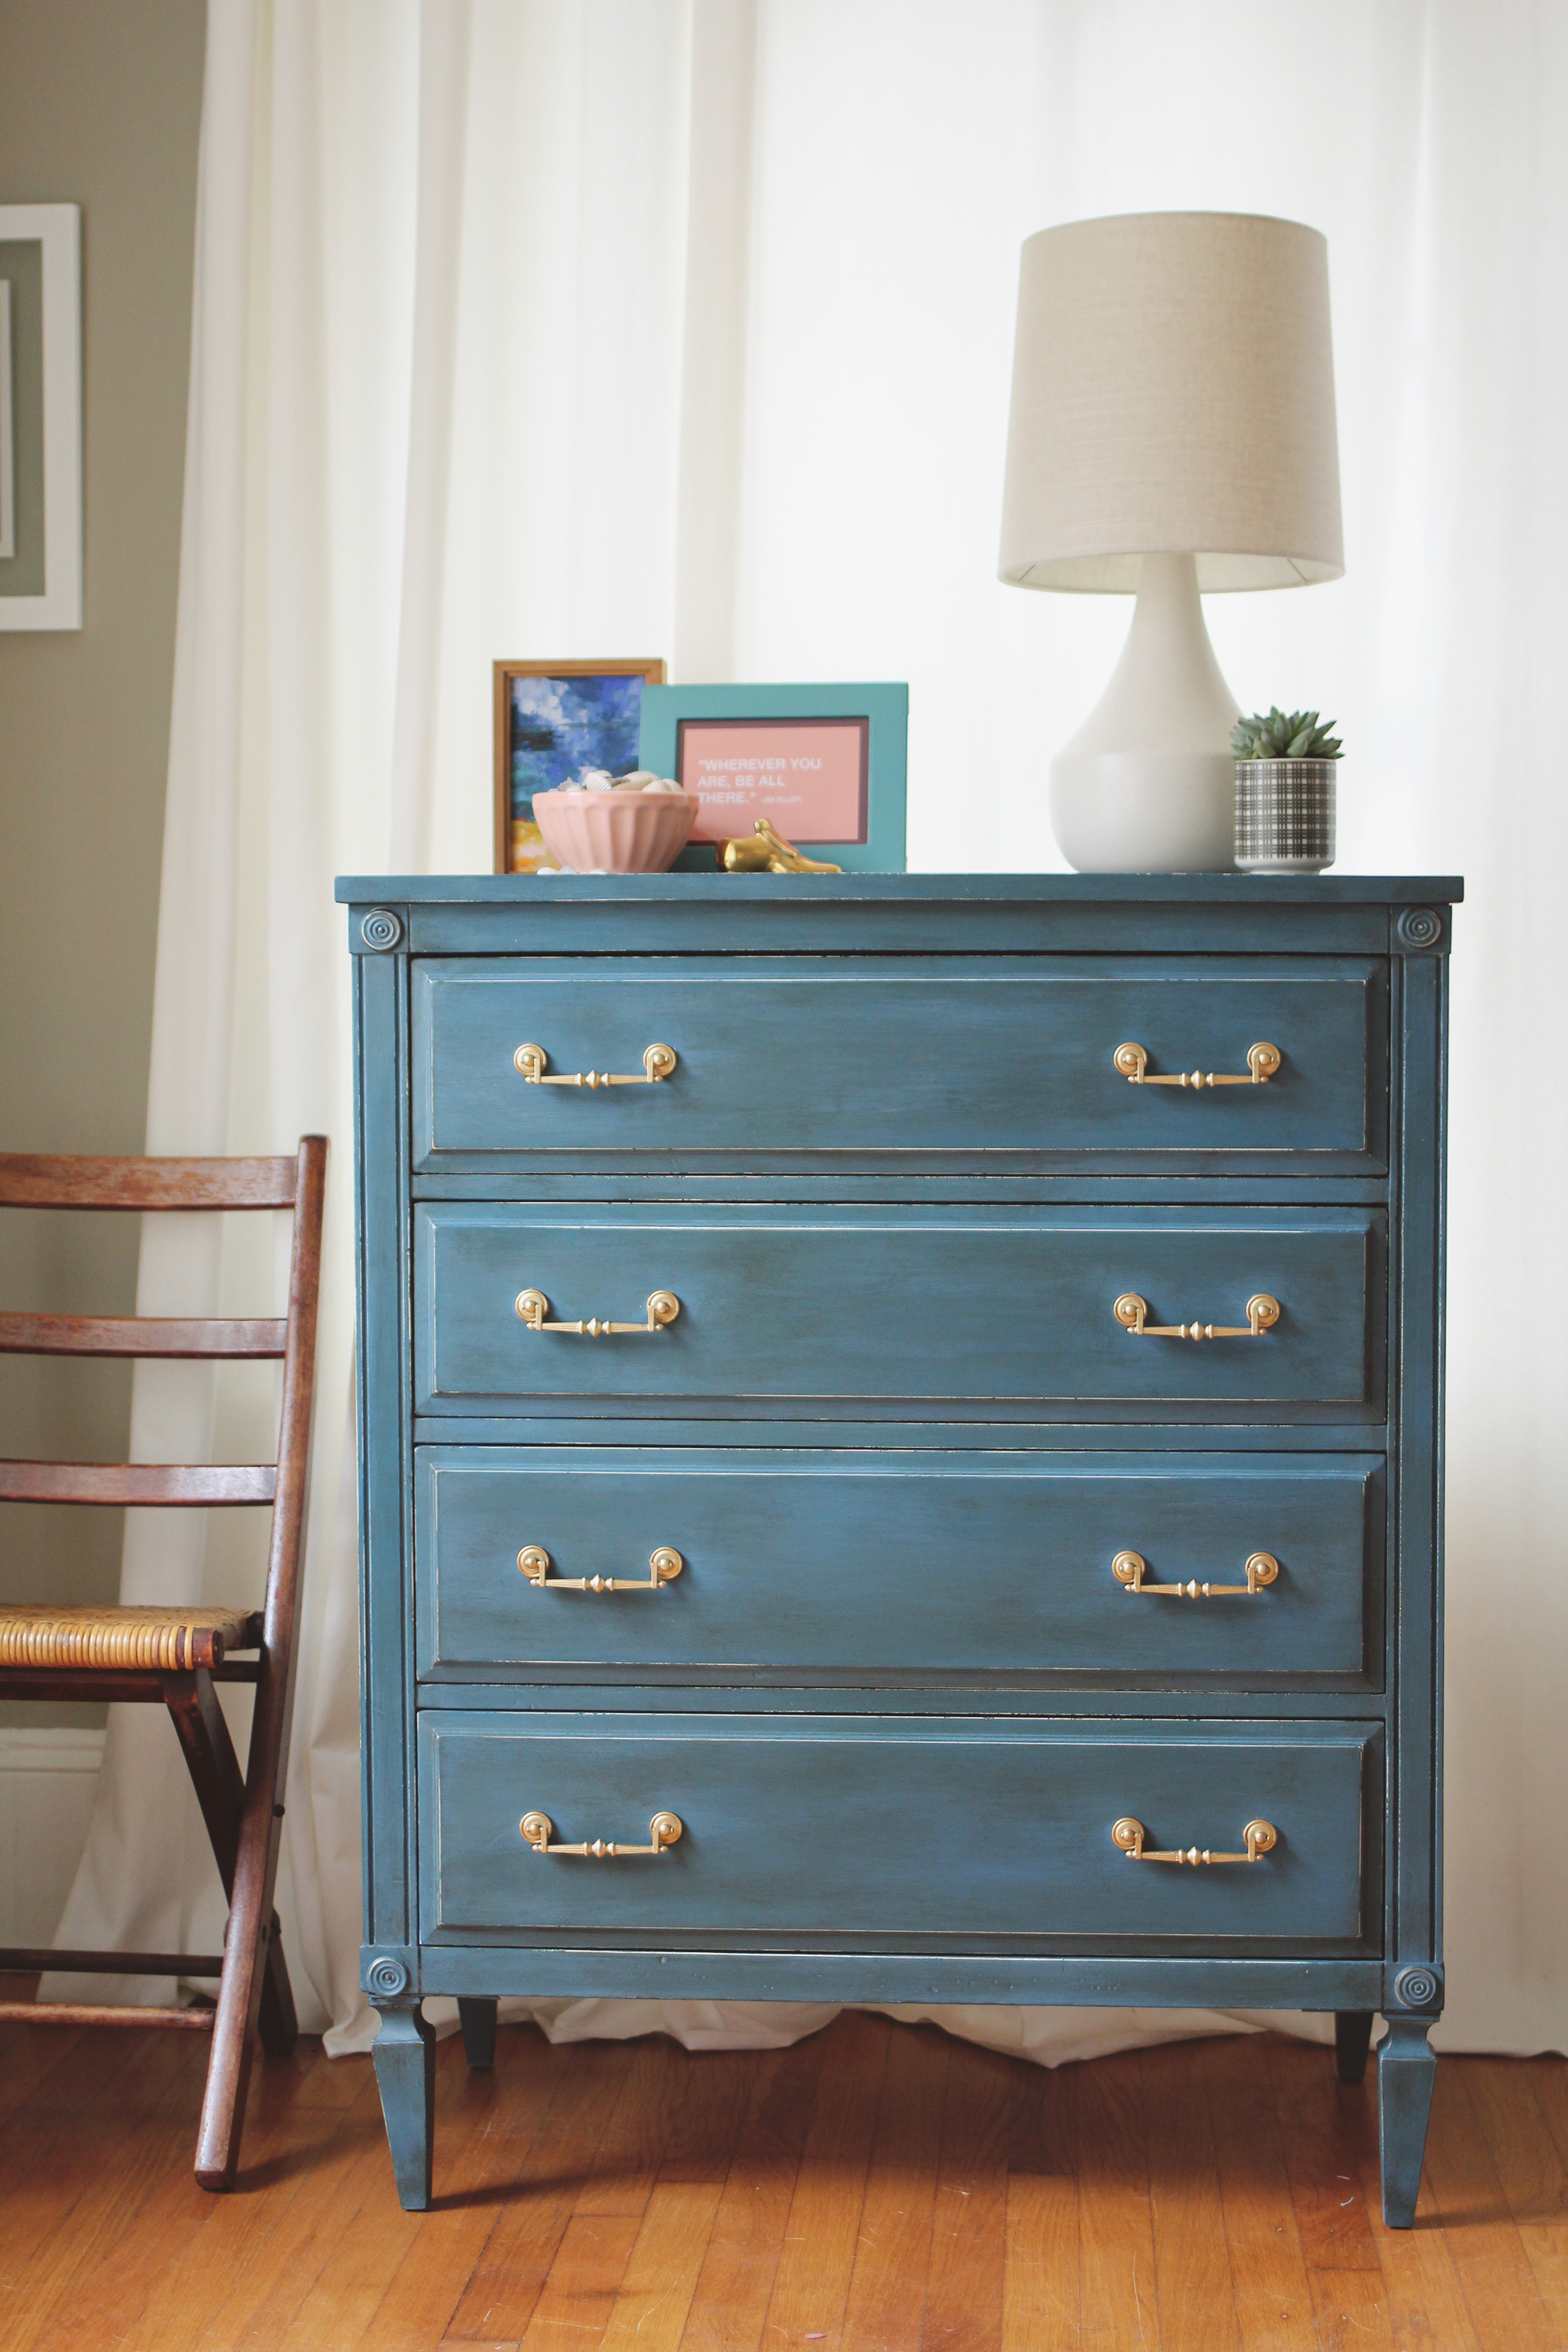 jo-torrijos-a-simpler-design-atlanta-custom-painted-furniture-annie-sloan-chalk-paint-aubusson-blue-dresser-1.jpg